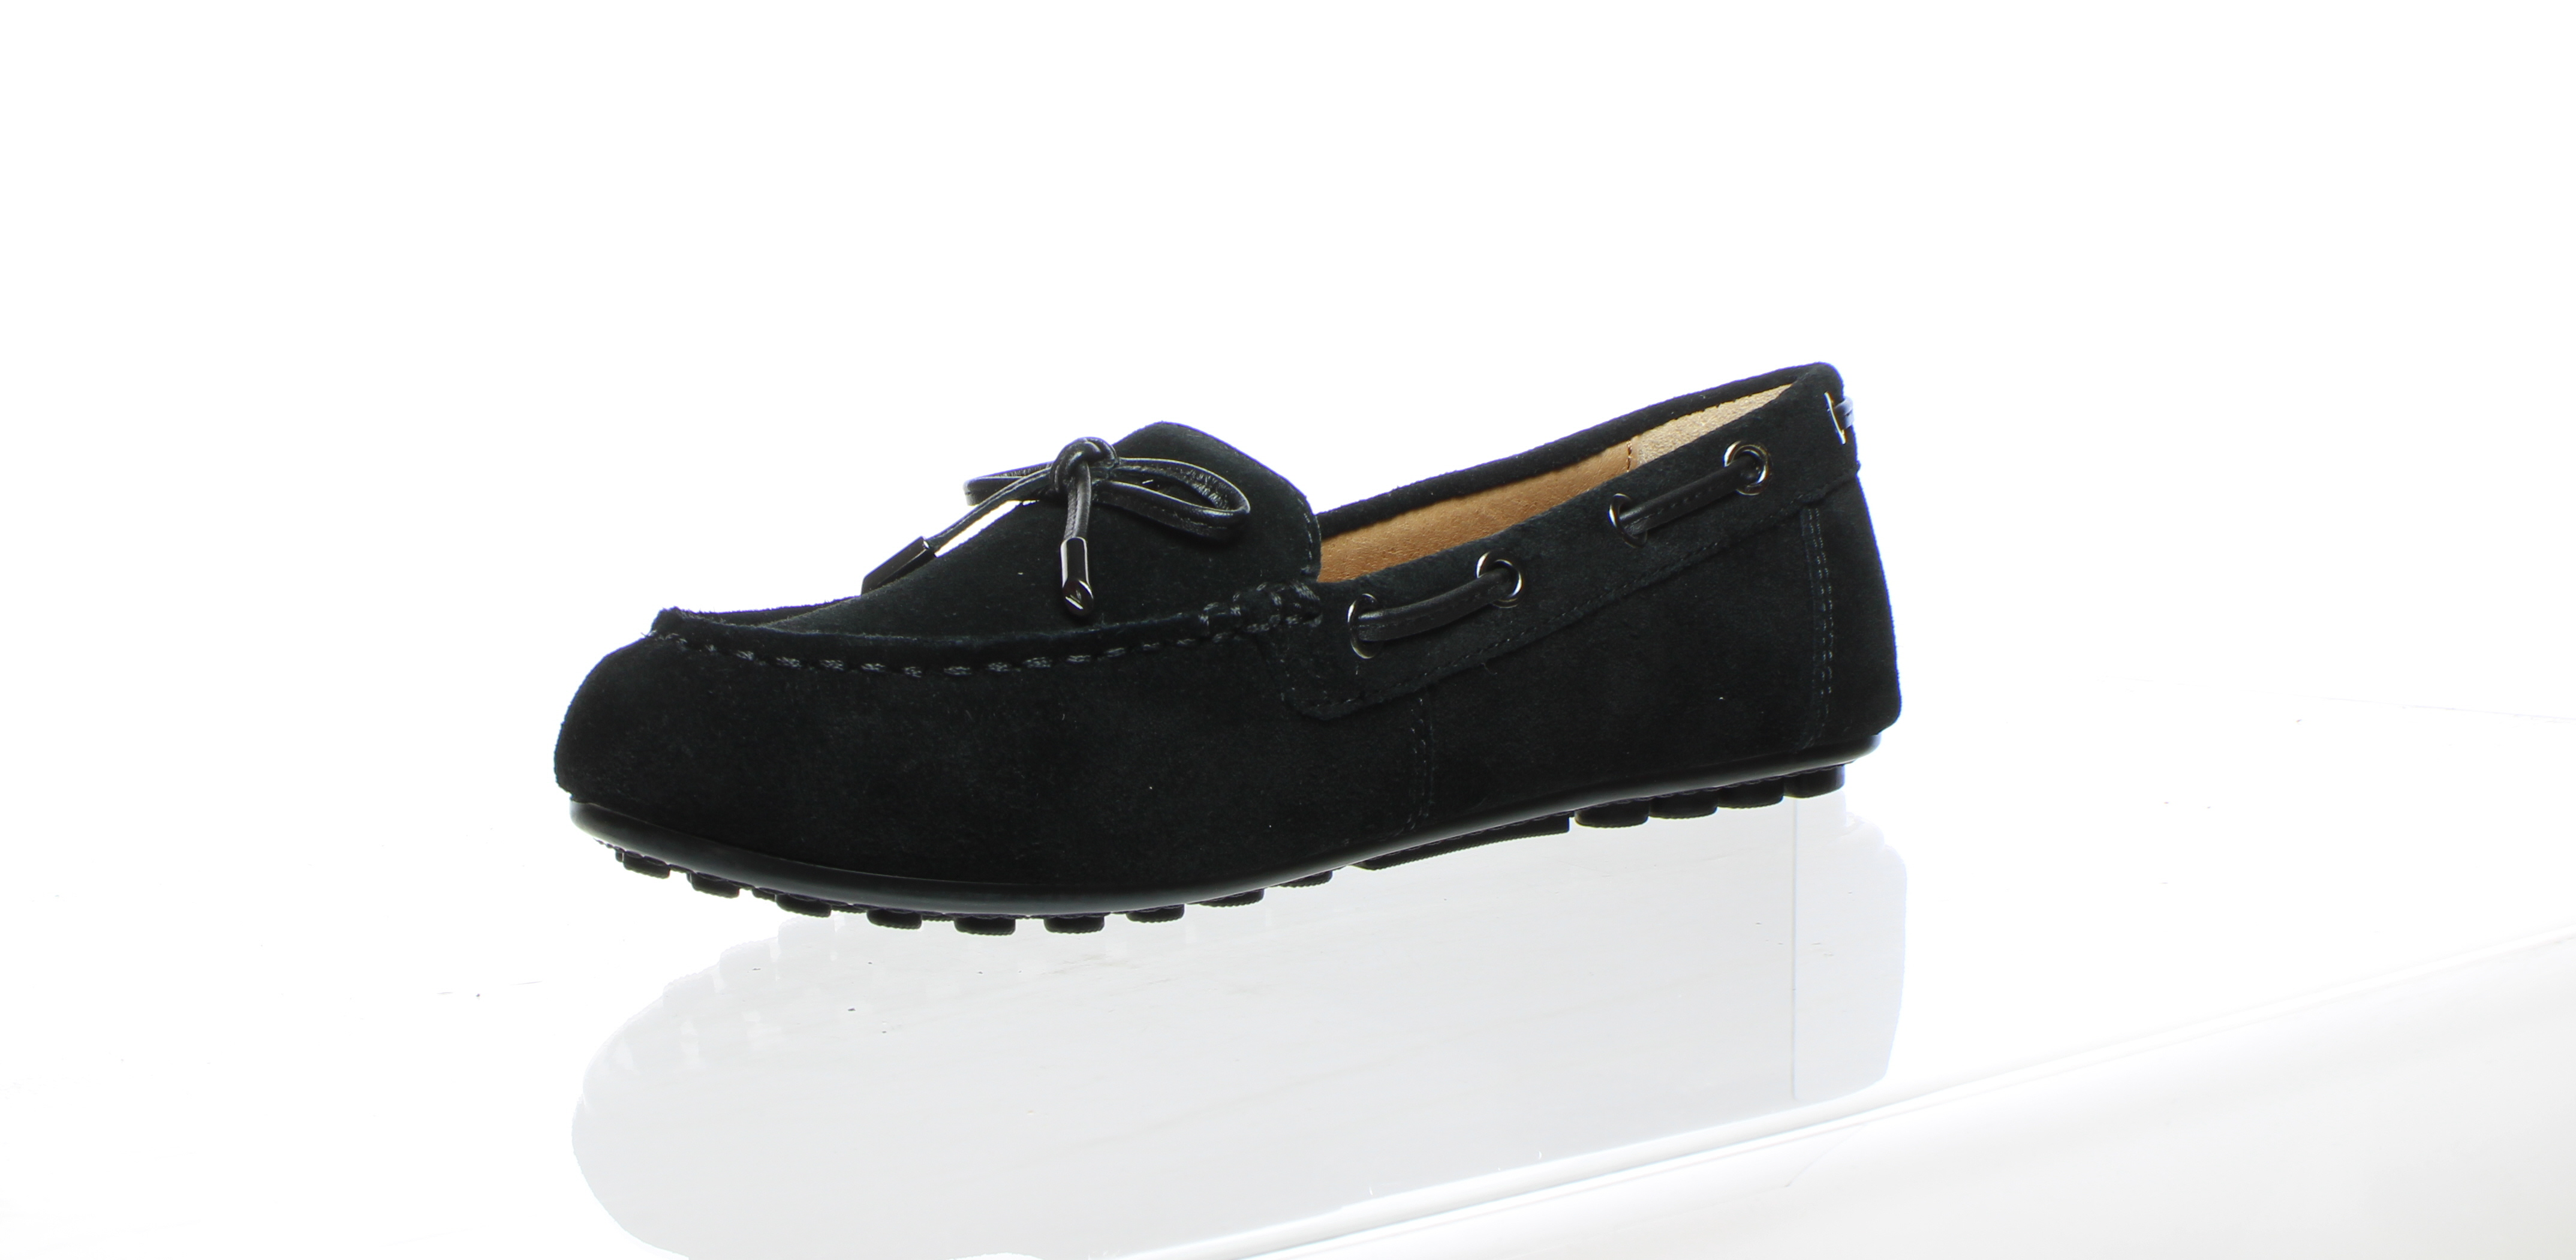 Vionic-Womens-Honor-Virginia-Leather-Moccasin-Comfort-Loafers thumbnail 7